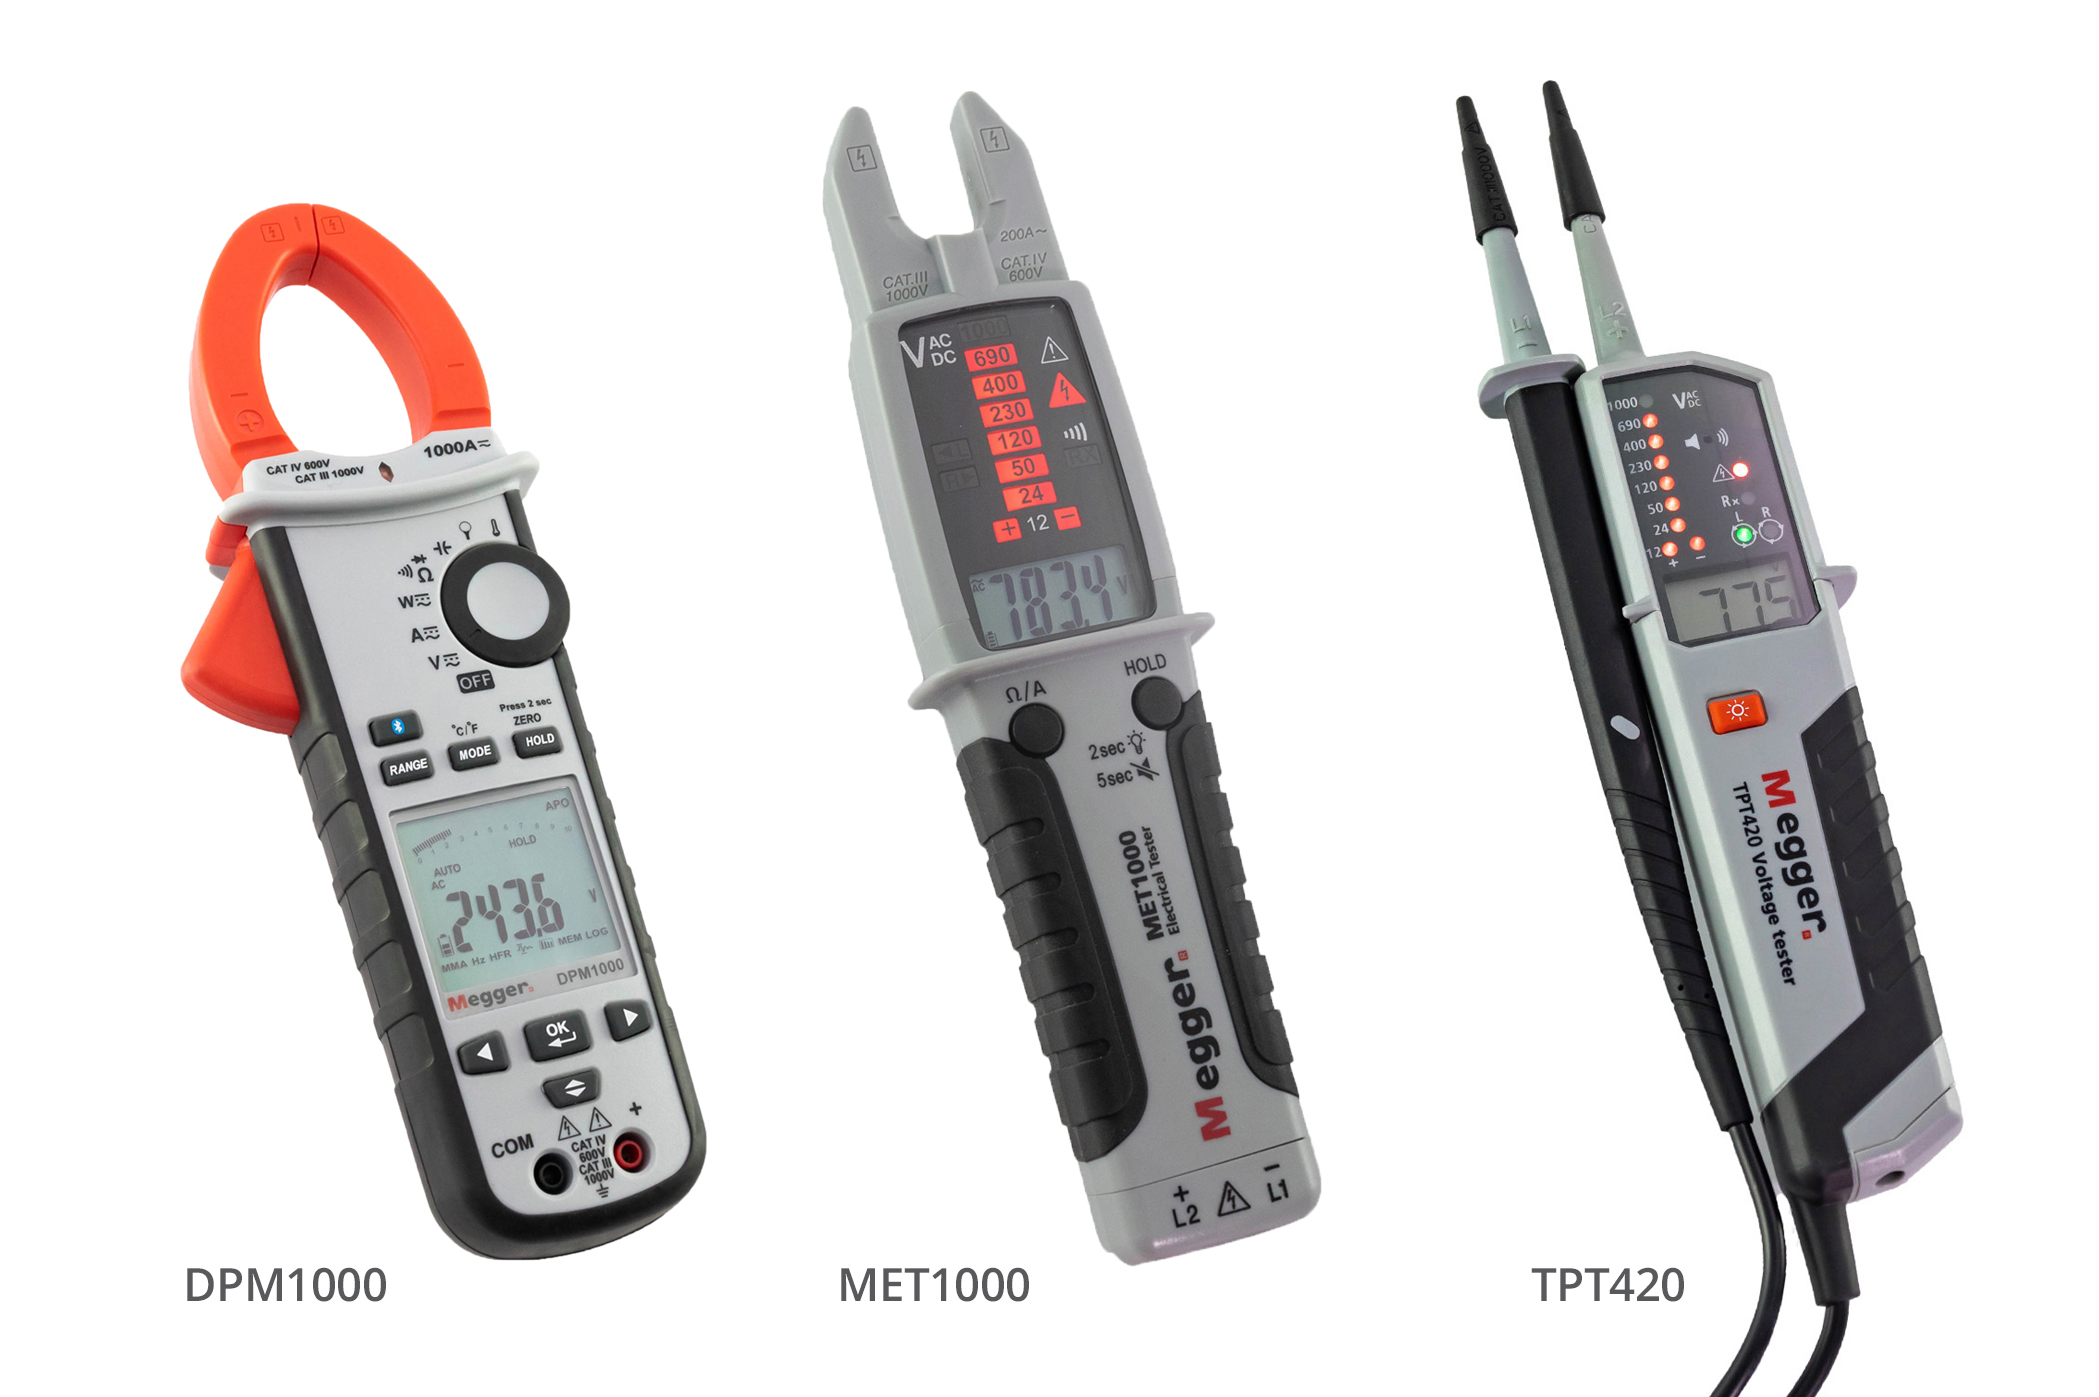 Three Compact Testers from Megger Make Taking Measurements Easier